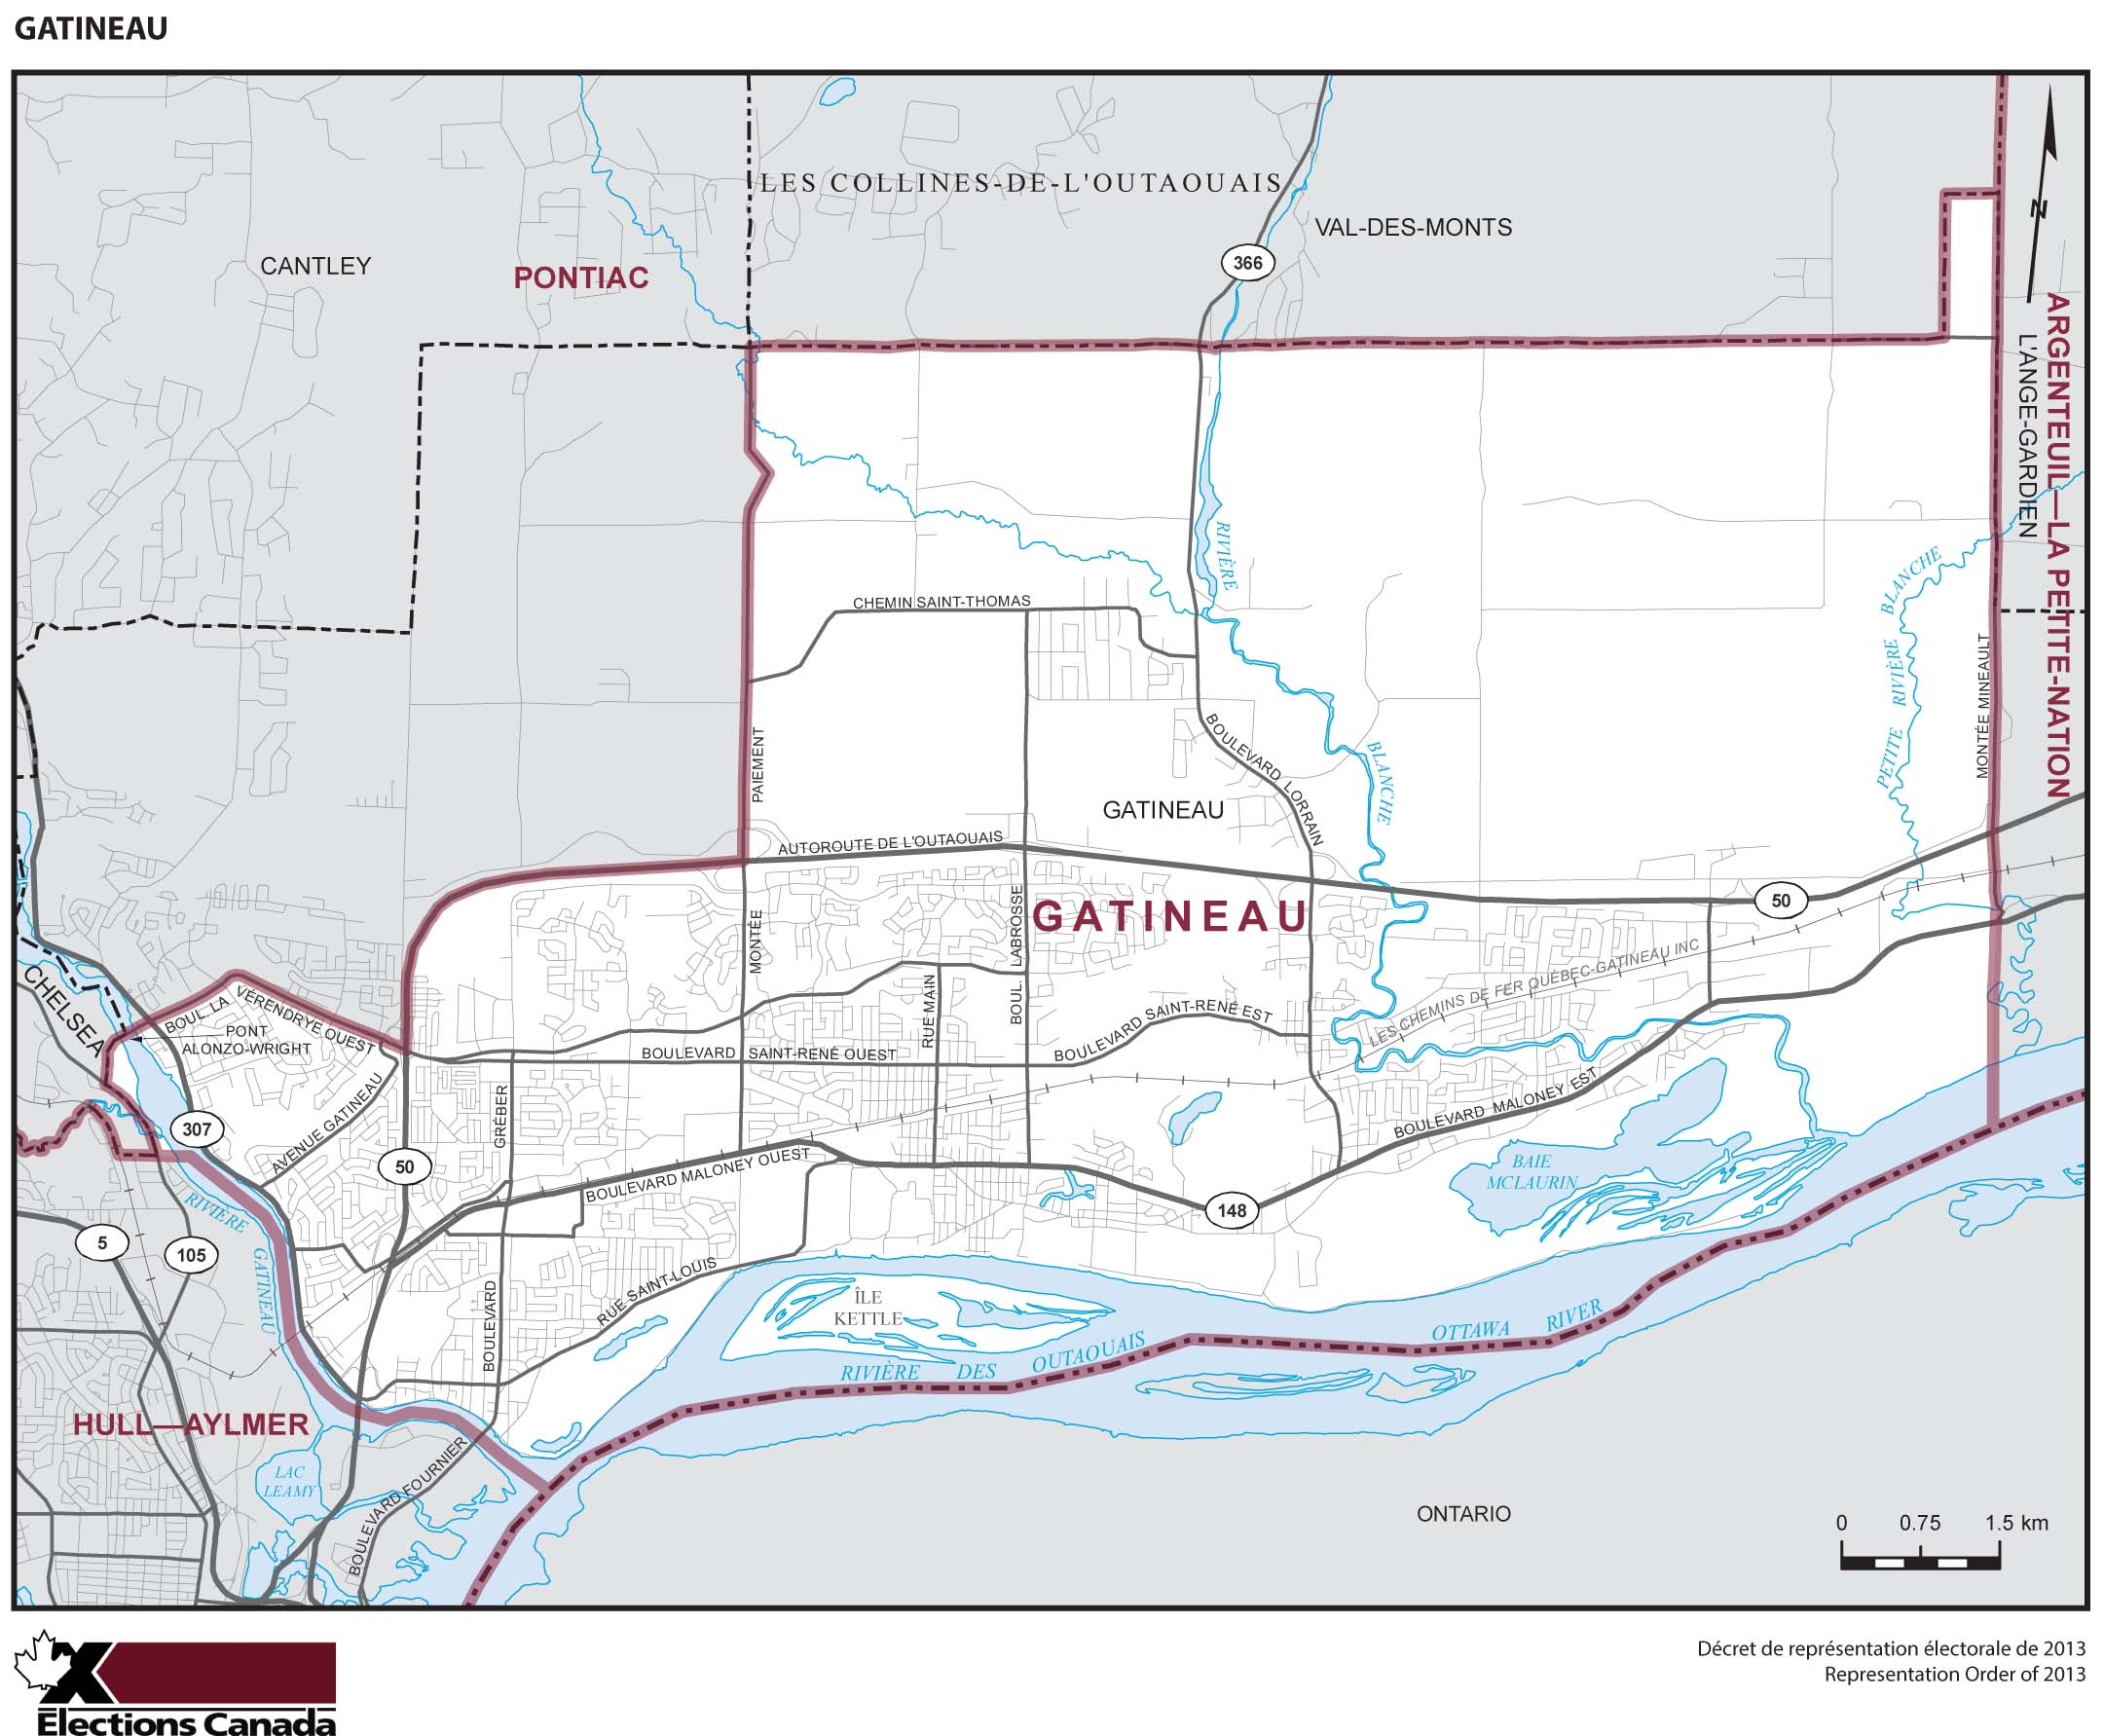 Map: Gatineau, Federal electoral district, 2013 Representation Order (in white), Quebec